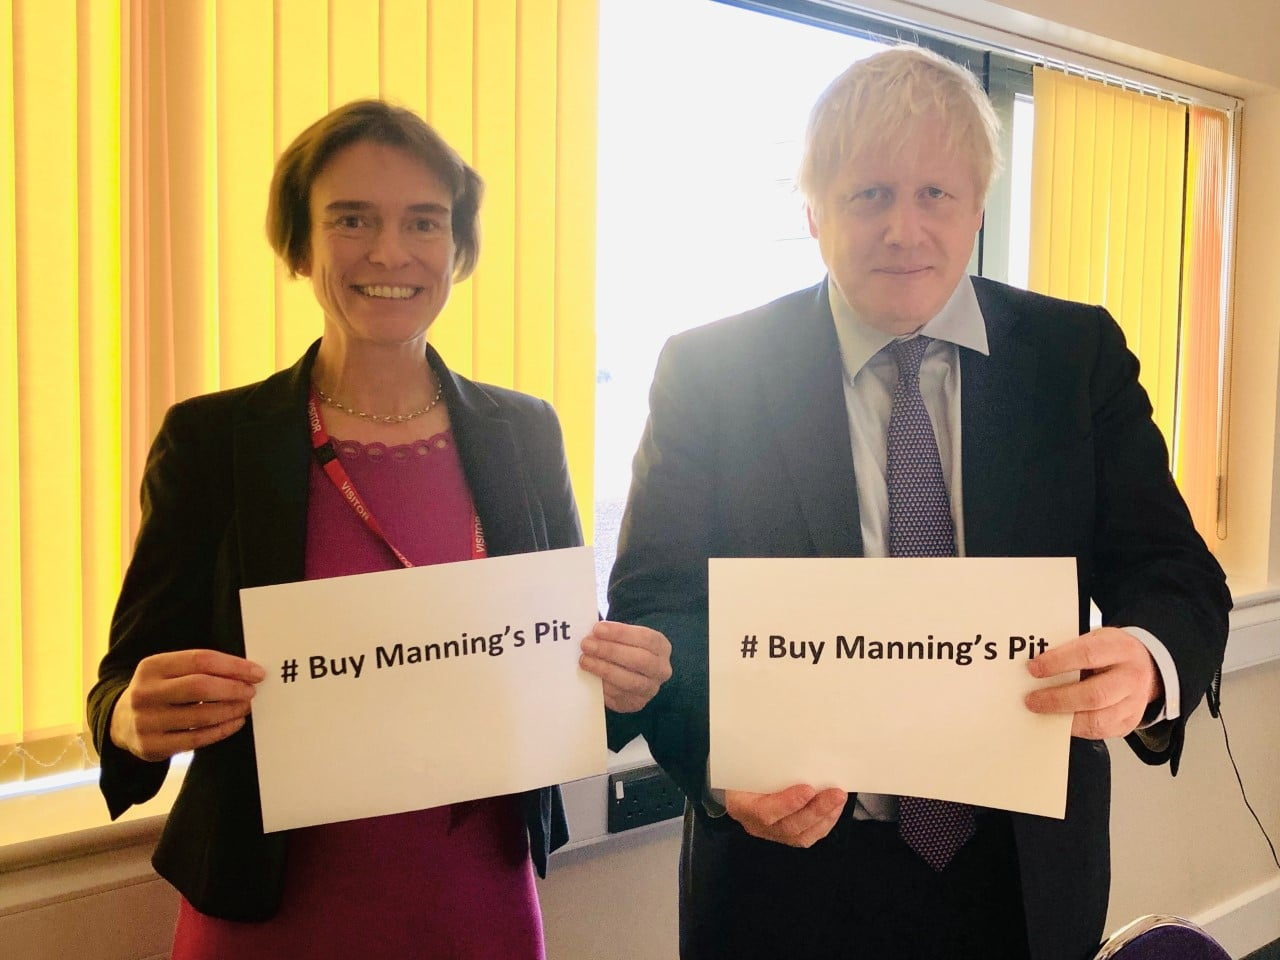 Boris Johnson supports our campaign